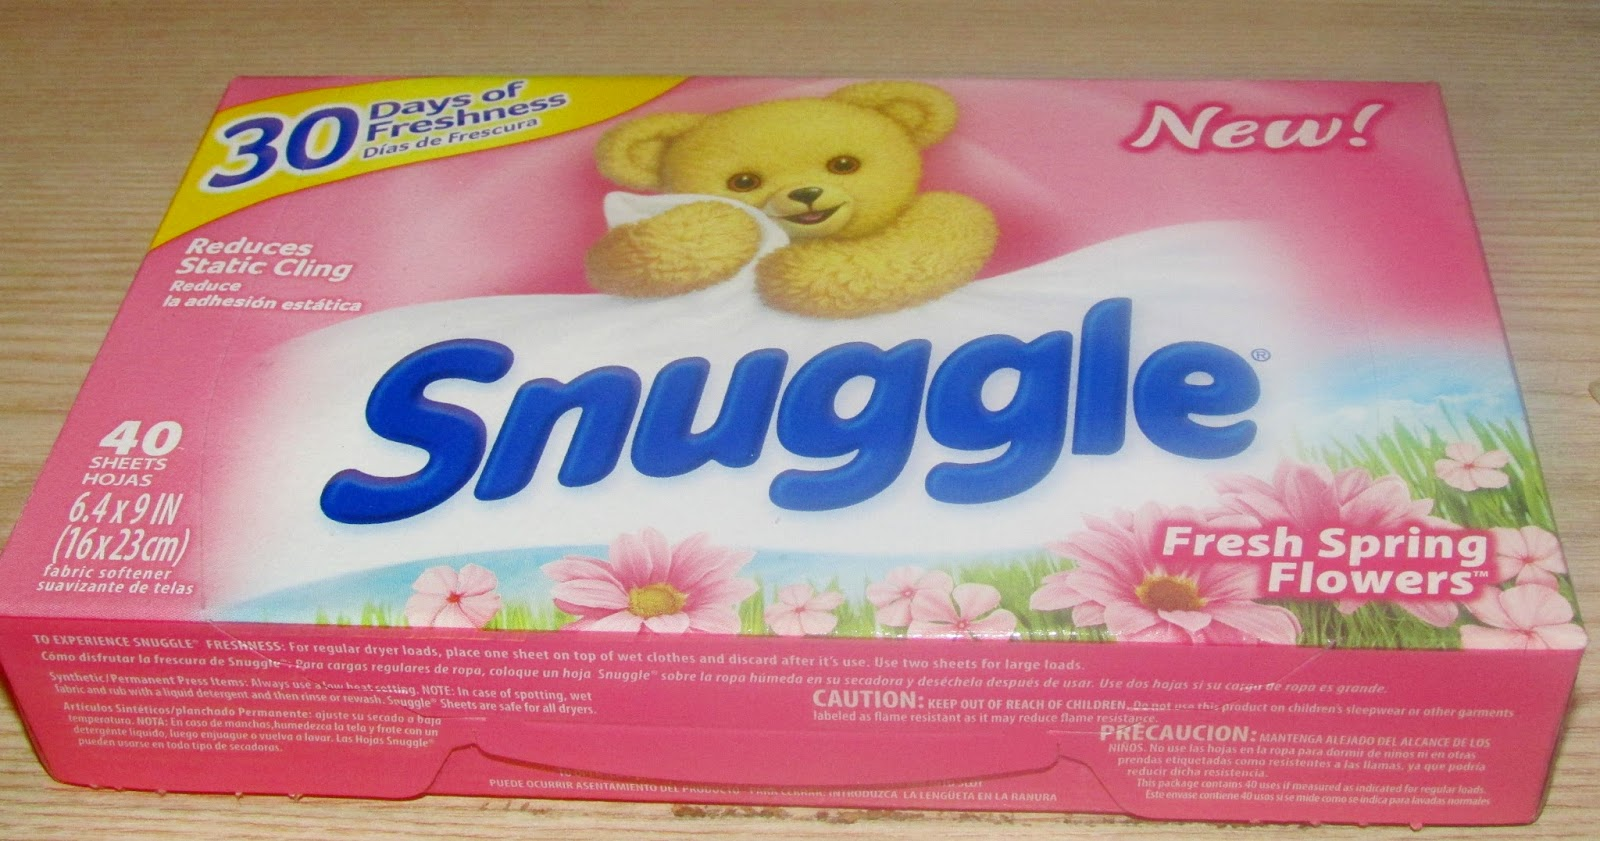 Heck Of A Bunch Snuggle Fresh Spring Flowers Fabric Softener Review